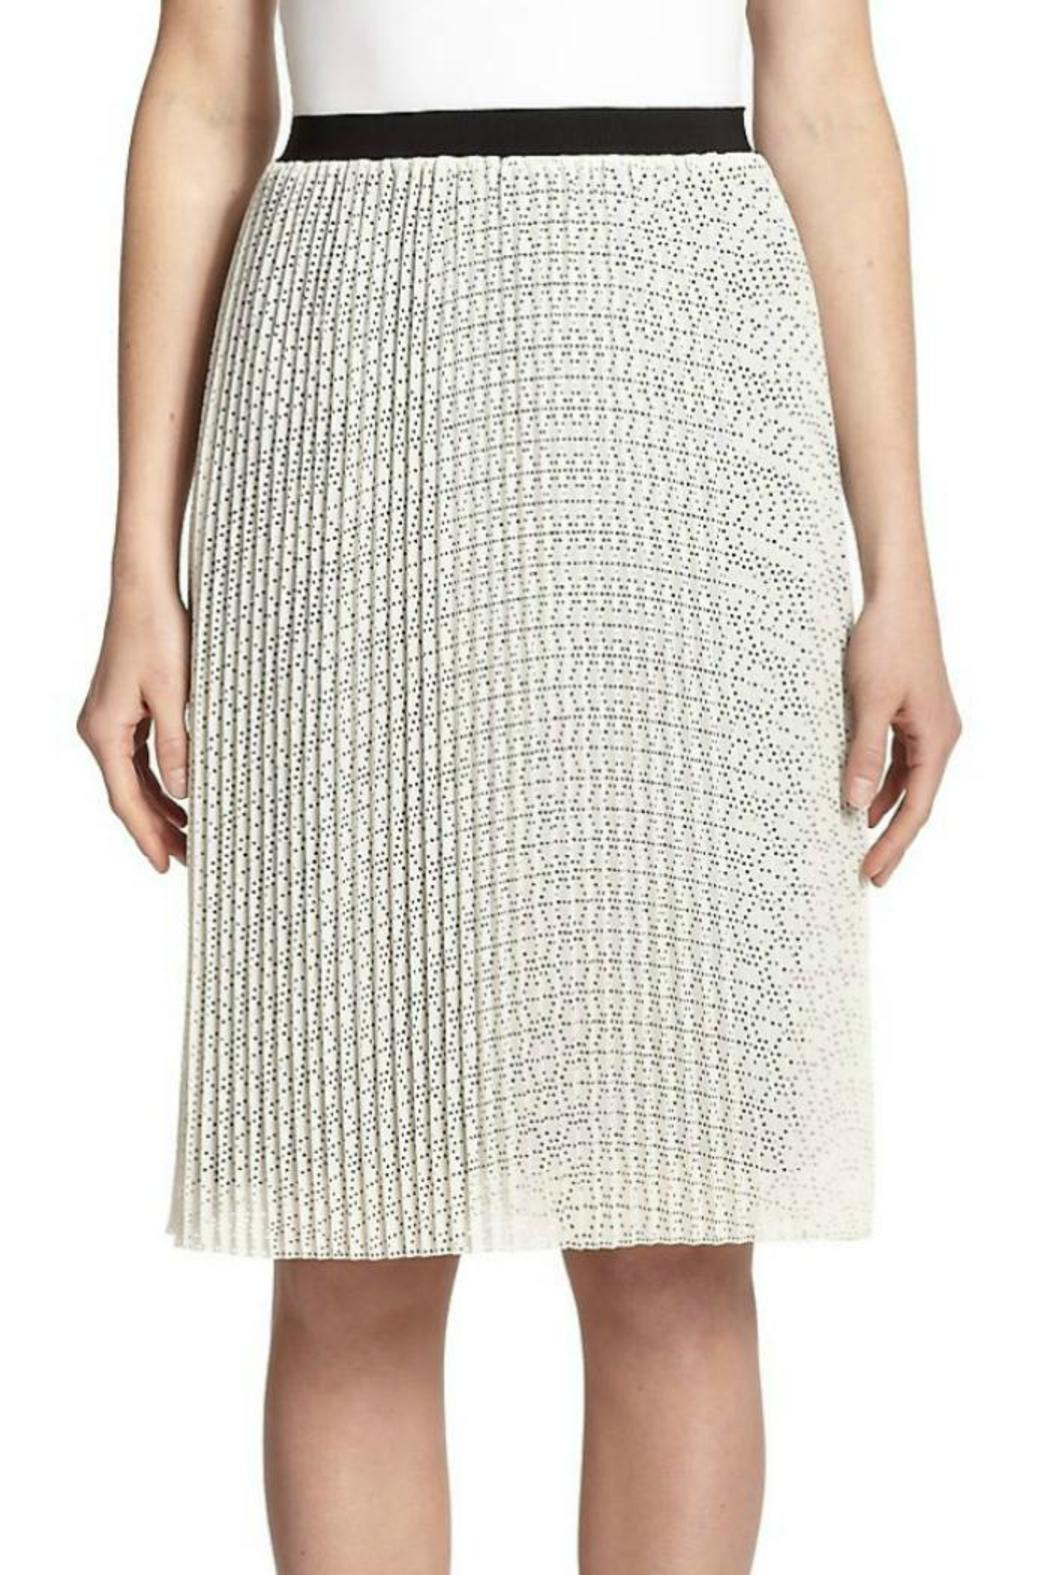 Joie Jacinthe Pleated Skirt - Front Full Image